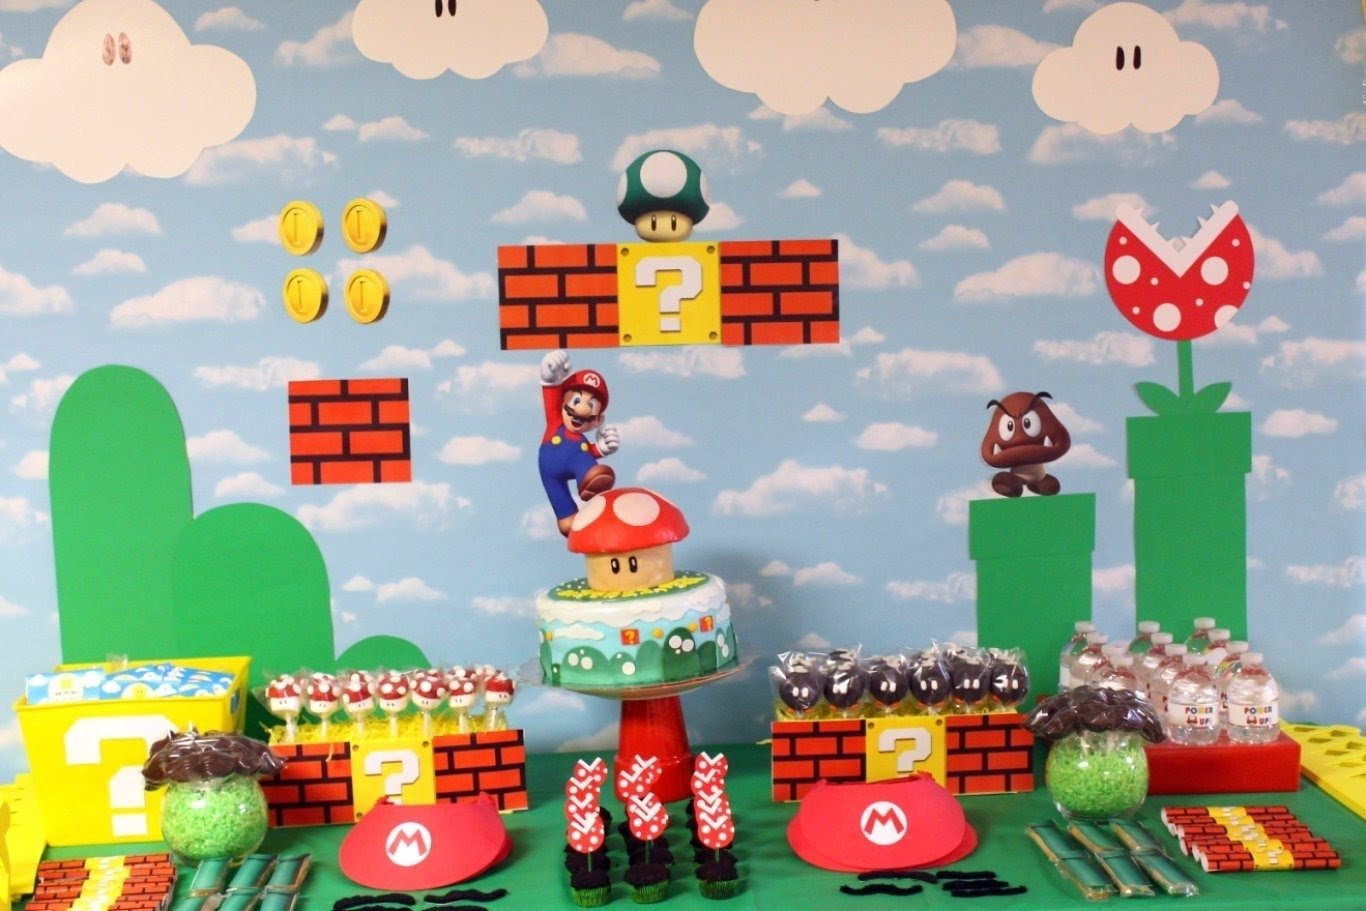 10 Lovely Super Mario Brothers Party Ideas mario birthday party decorations and walk through abes world 1 2020